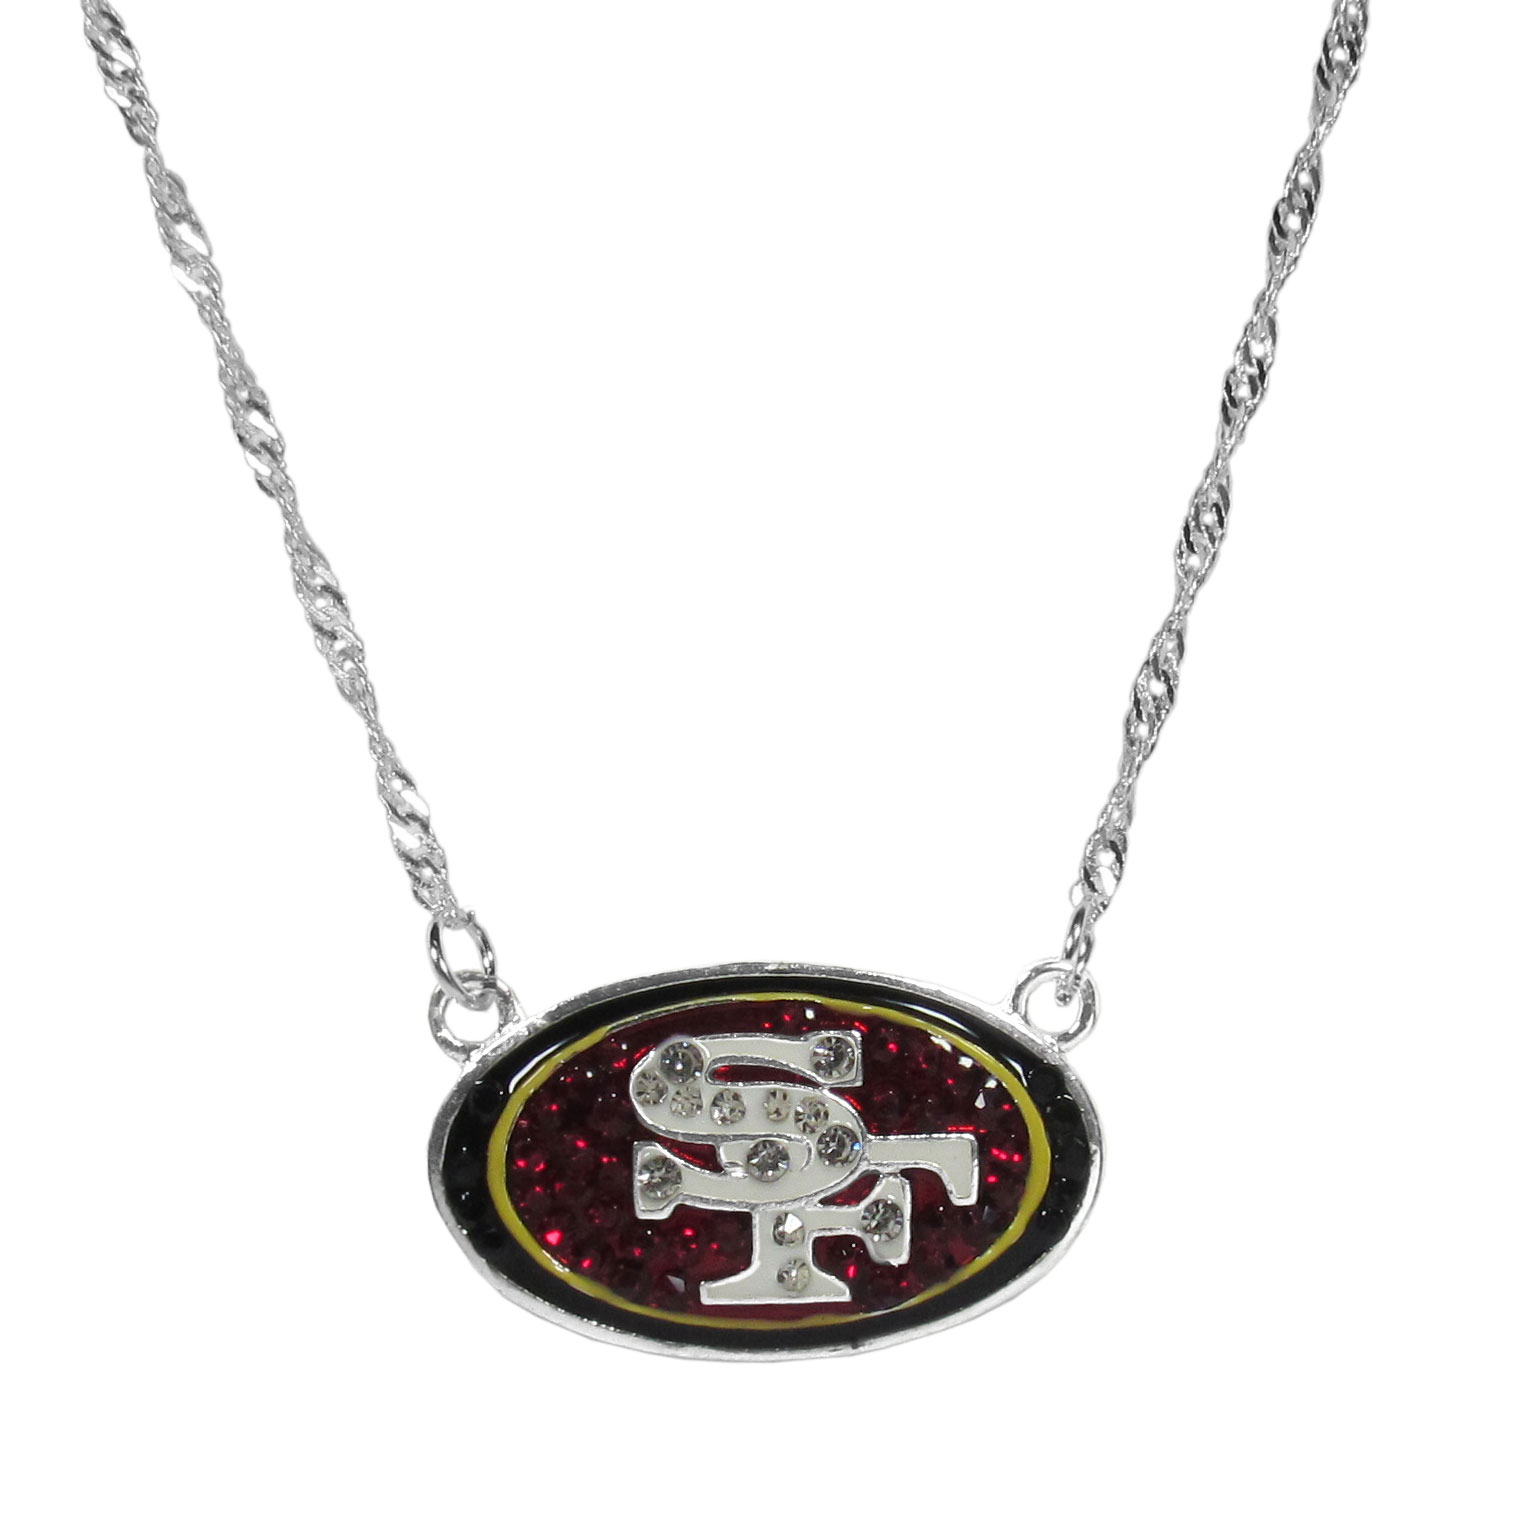 San Francisco 49ers Crystal Logo Necklace - This is a must-have fan accessory with a delicately beautiful 16 inch silver plated chain and eye-catching, large San Francisco 49ers charm with tons of sparkling team colored crystals. The trendy look is finished with detailed team colors and the chain can be adjusted with a 2 inch extender. The bold look makes a statement on game day and the classic style is chic enough for everyday.